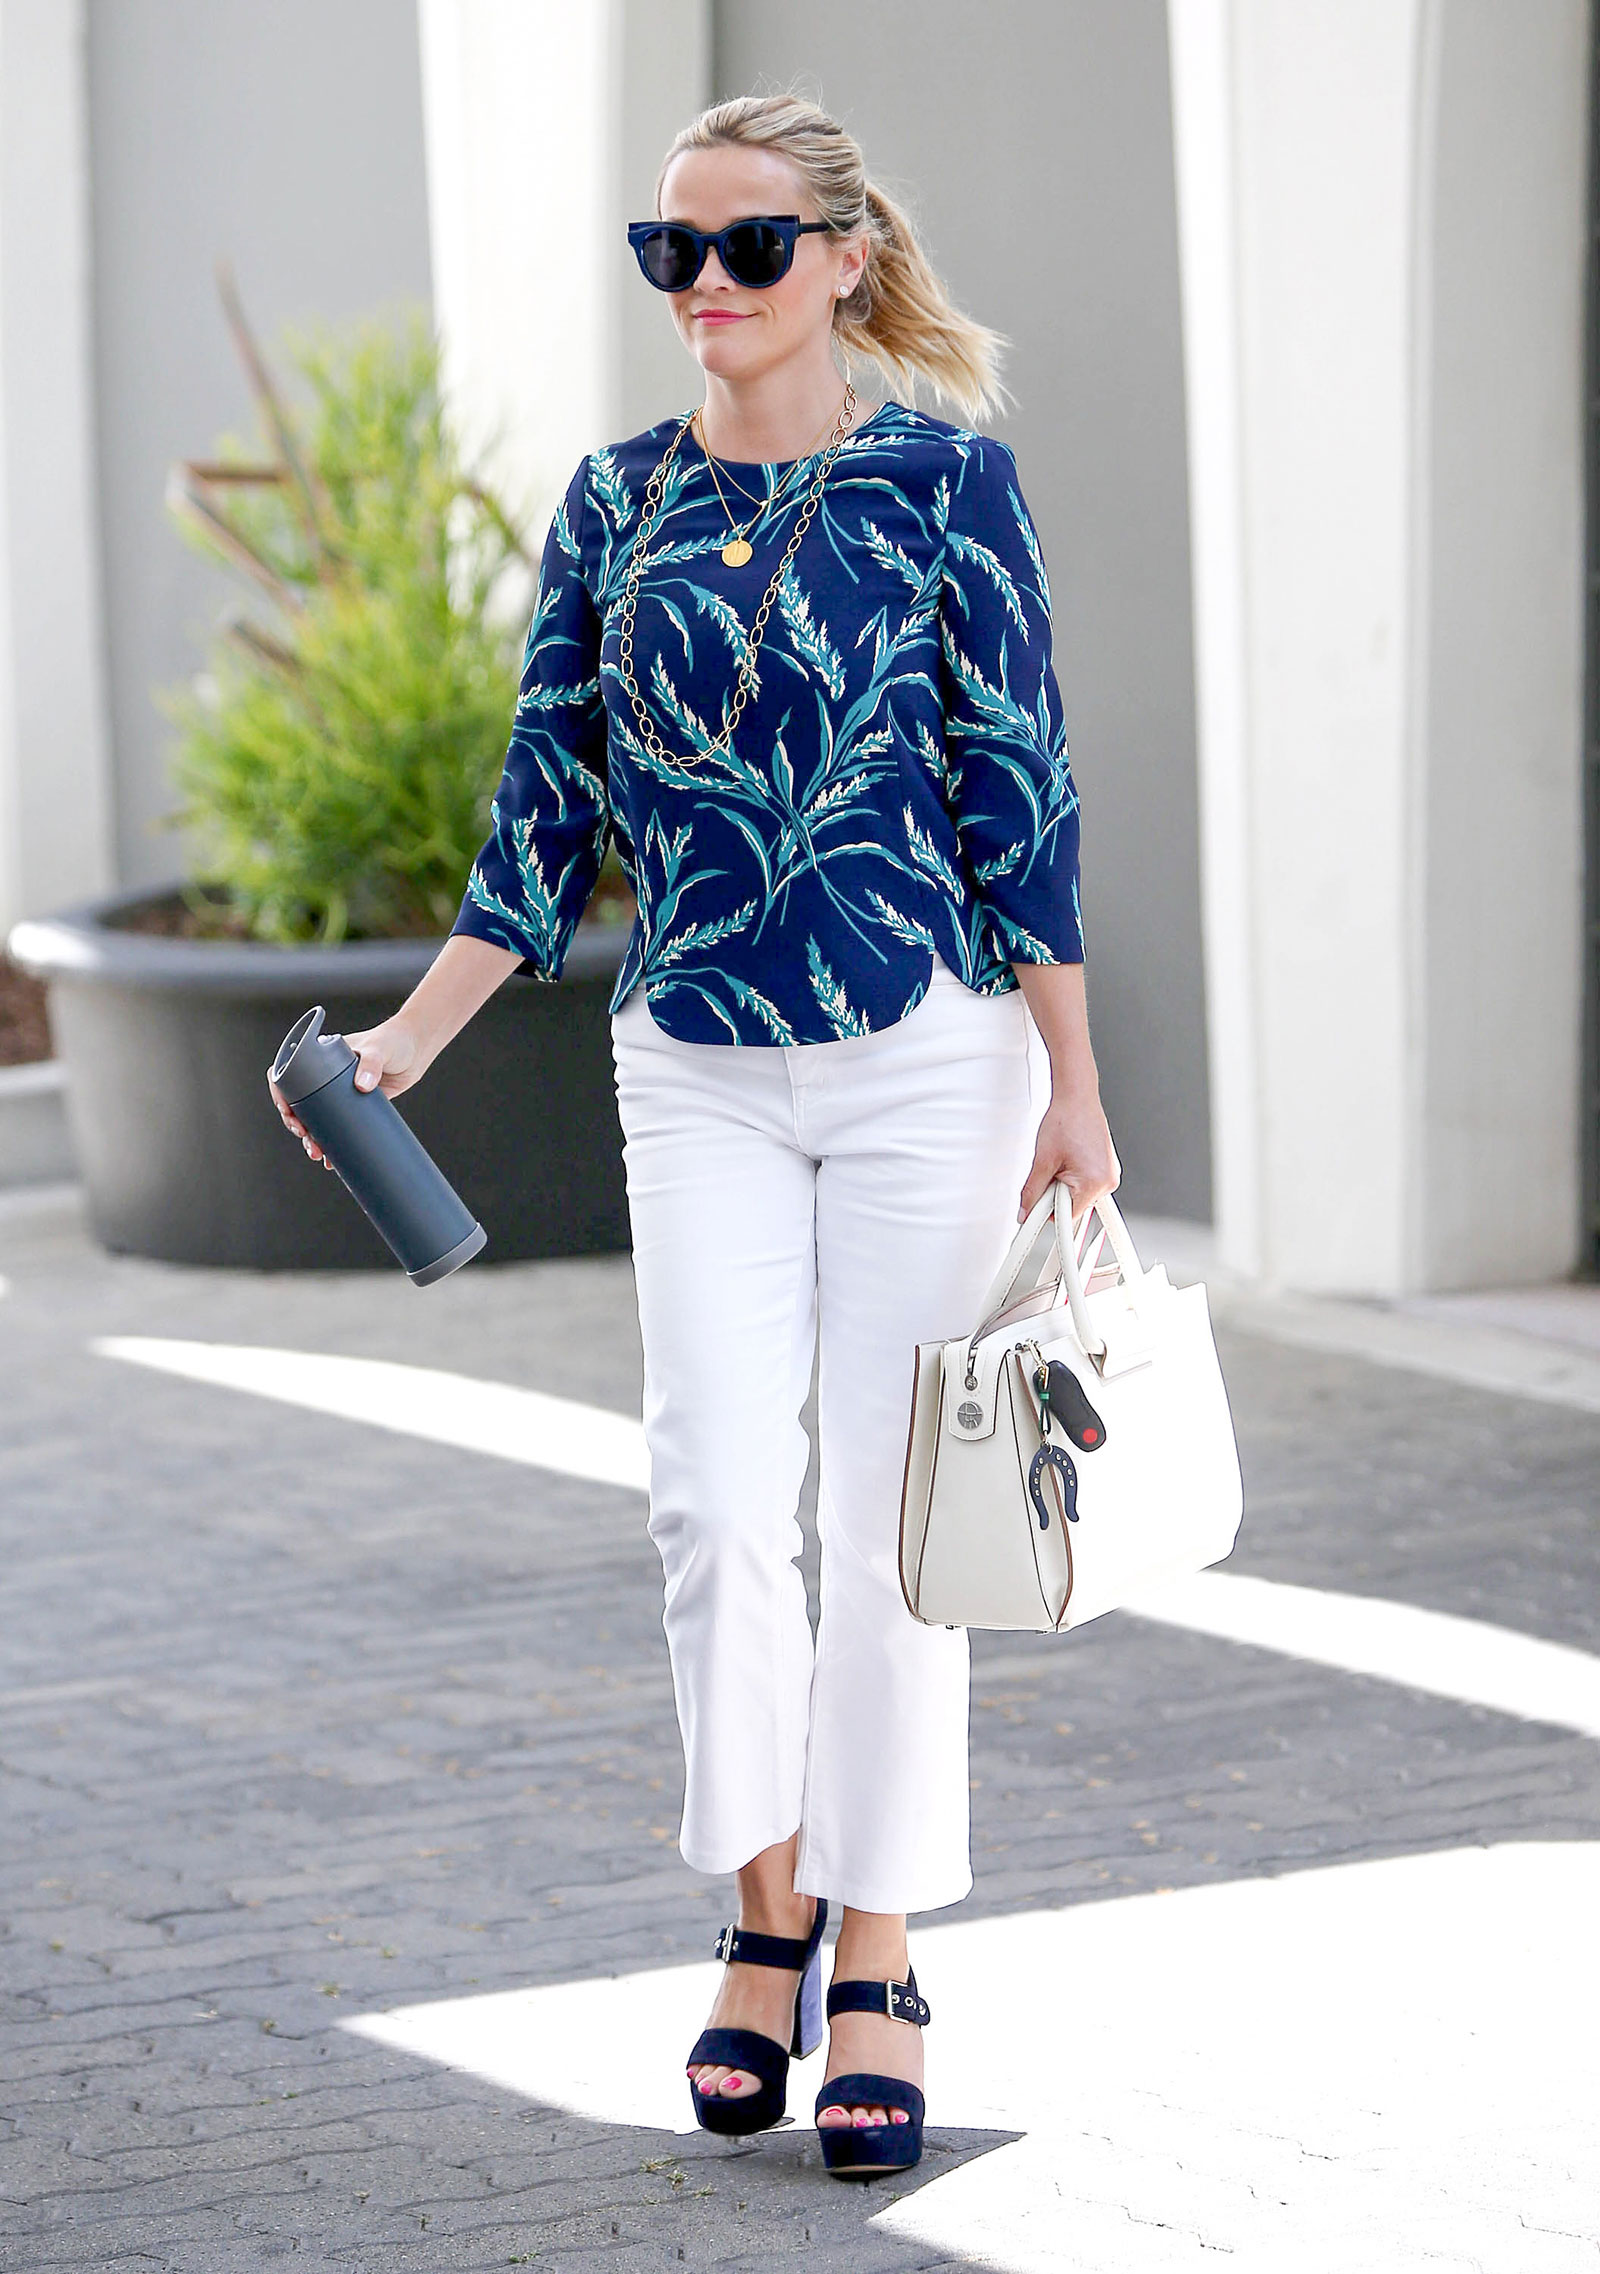 Reese Witherspoon's Floral Top, White Pants and Platform Sandals Look for Less